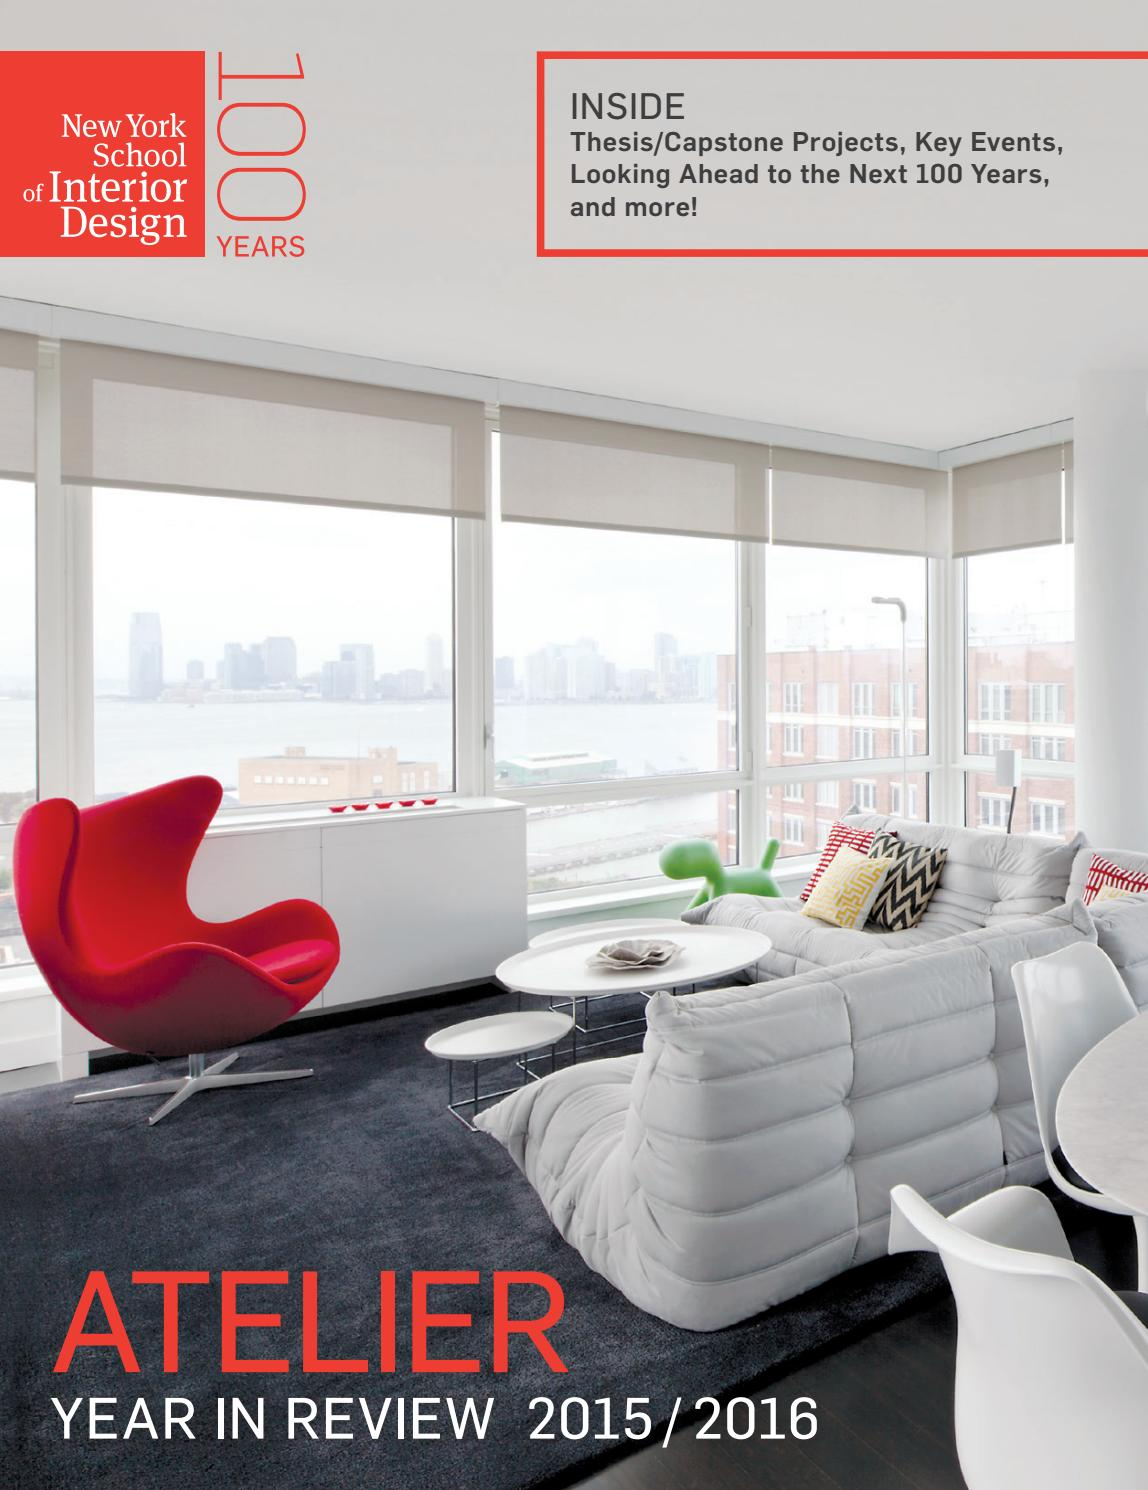 Atelier year in review 2015 2016 by new york school of interior design issuu